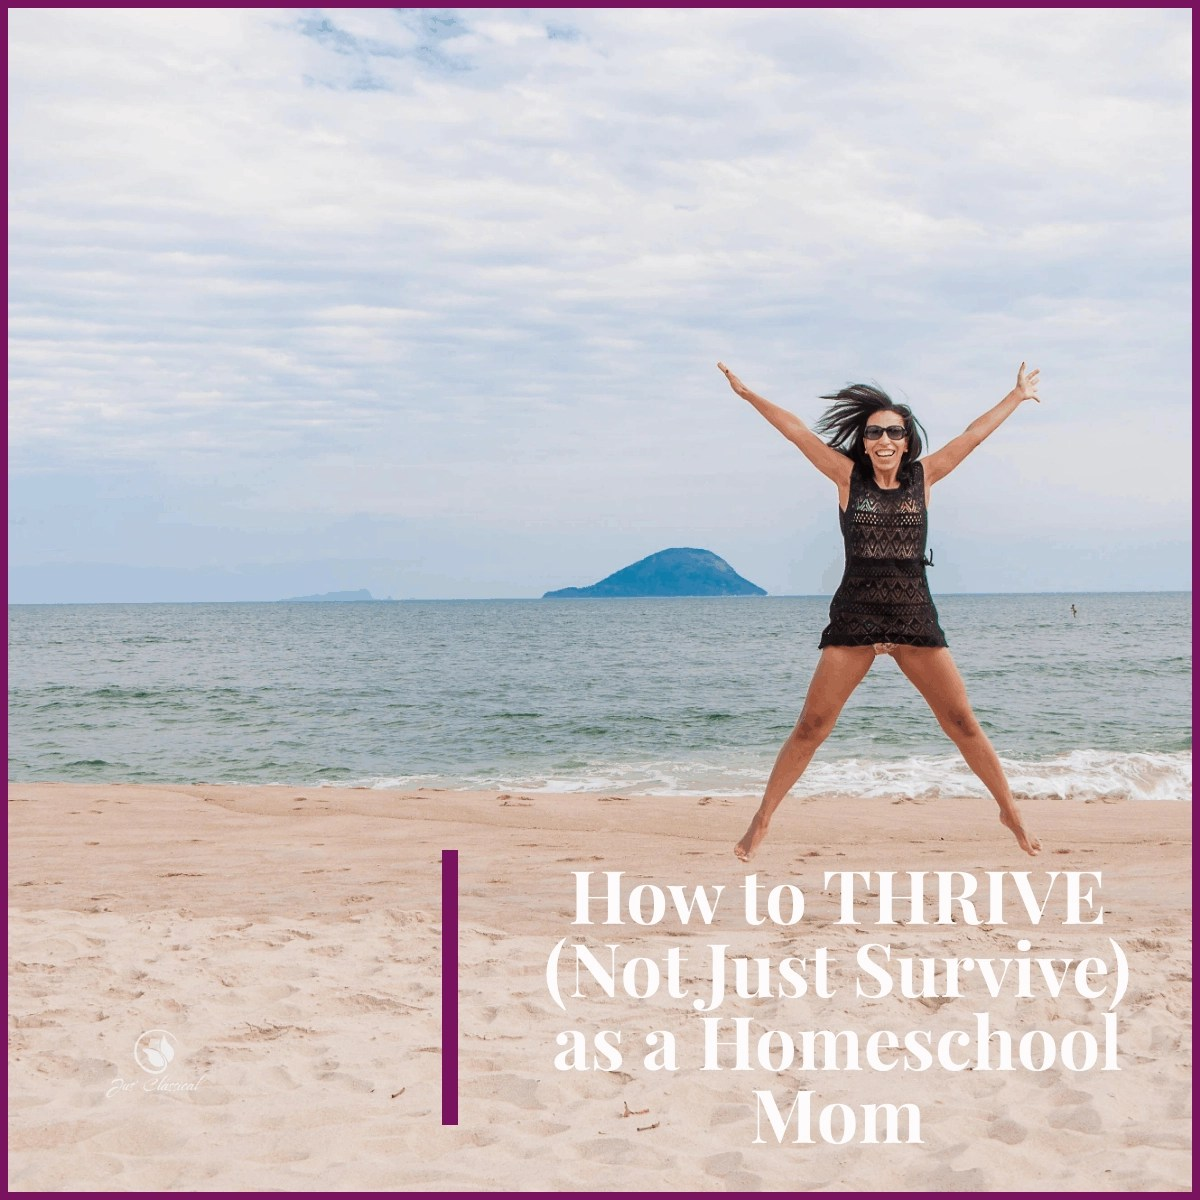 Picture of a woman jumping at the beach as she has learned How to Thrive, Not Just Survive, as a Homeschool Mom